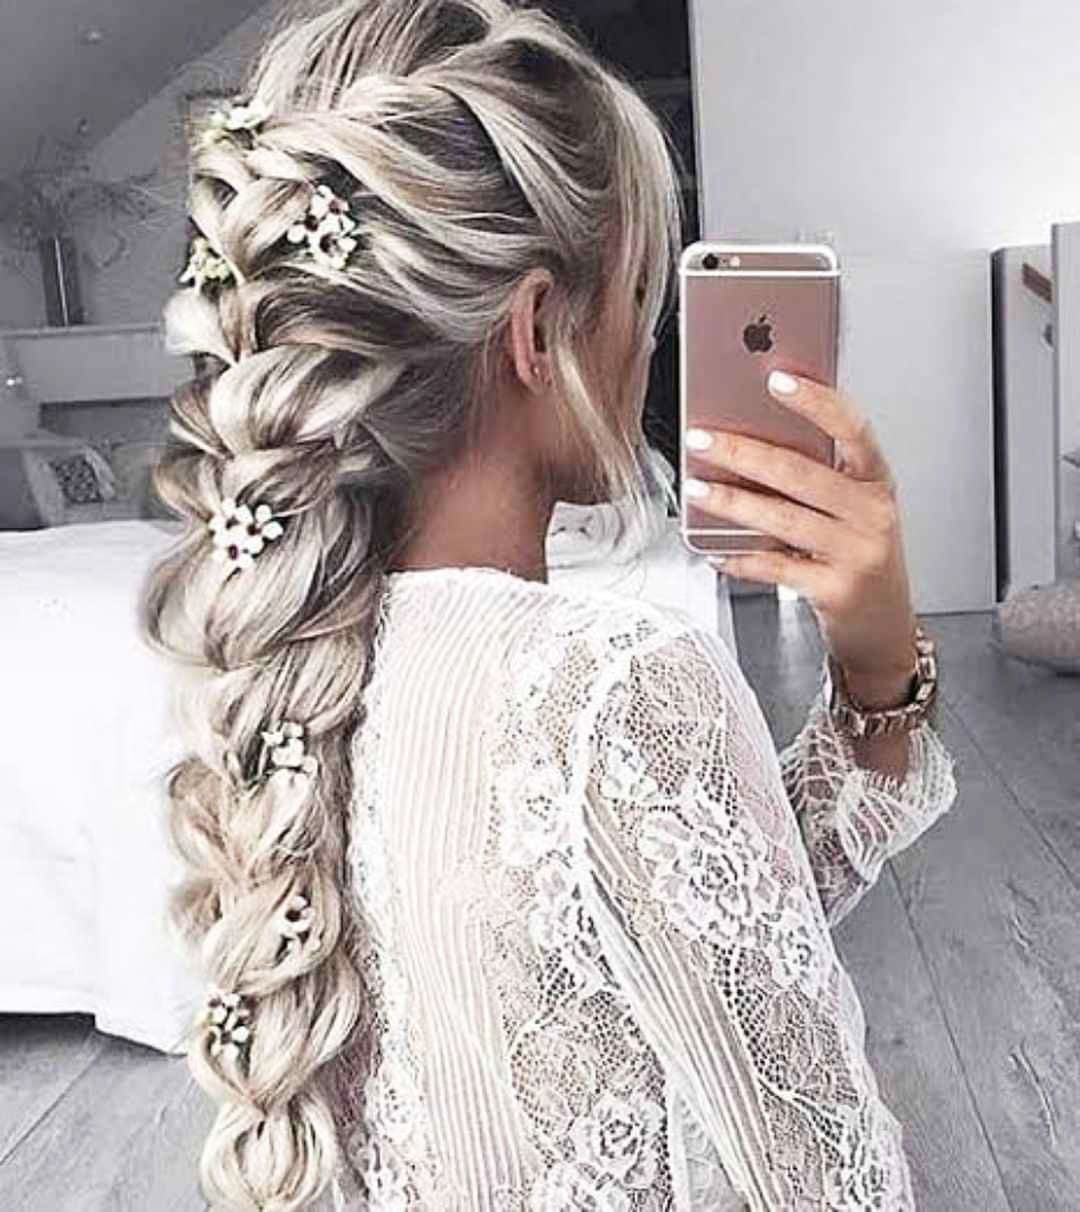 Hairstyles For Prom On Long Hair 2019-2020: Photo 5